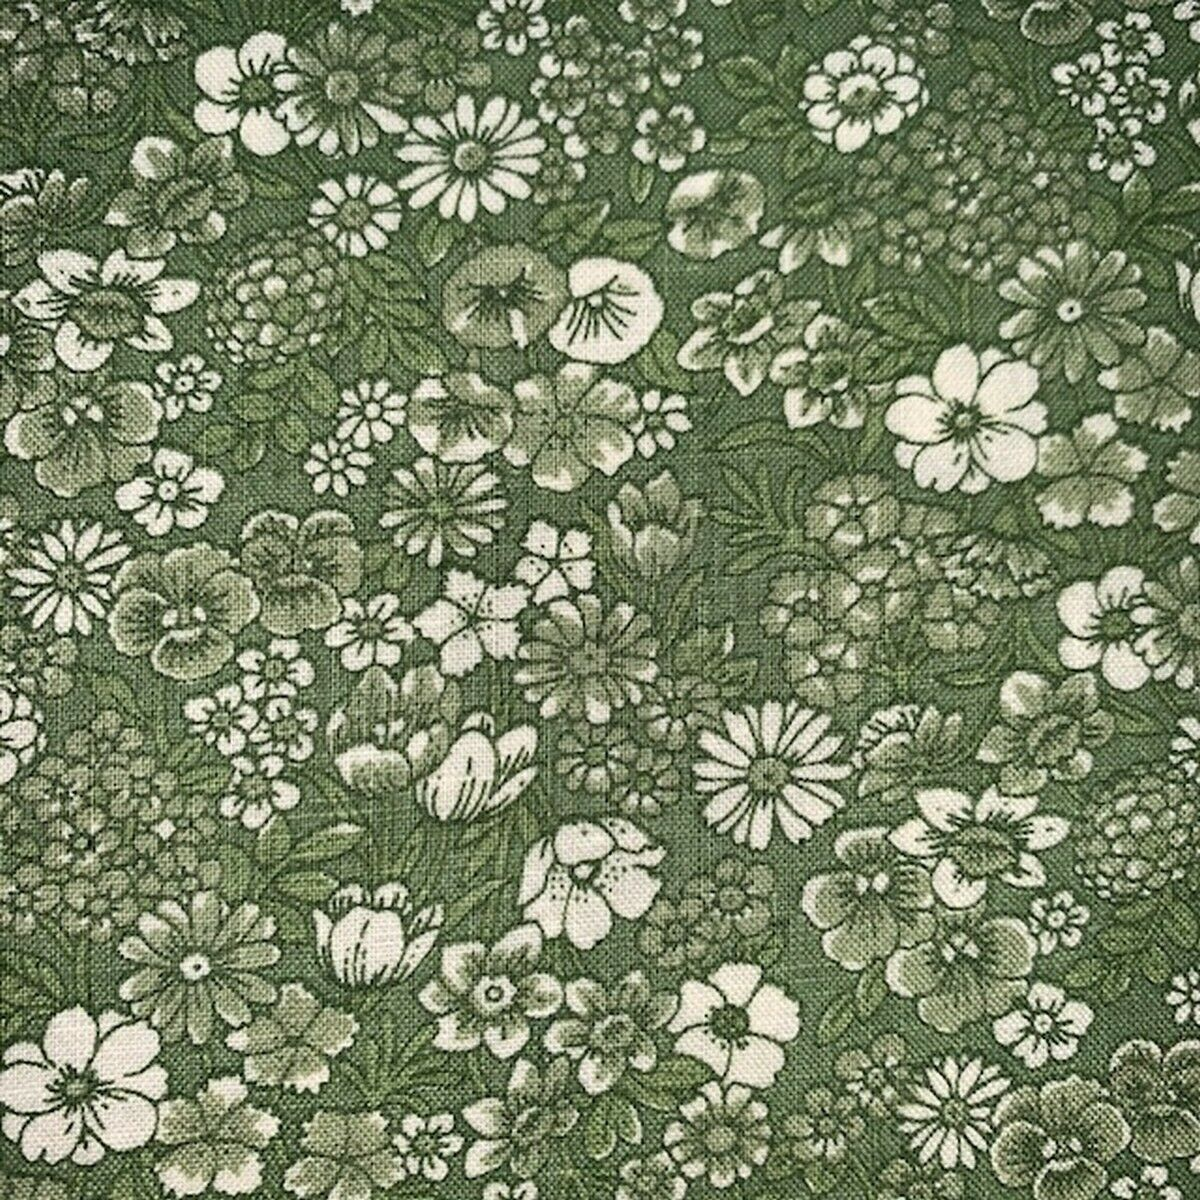 Image 1 - Vintage Concord Fabrics Monochromatic Green Country Floral By the Yard Quilting